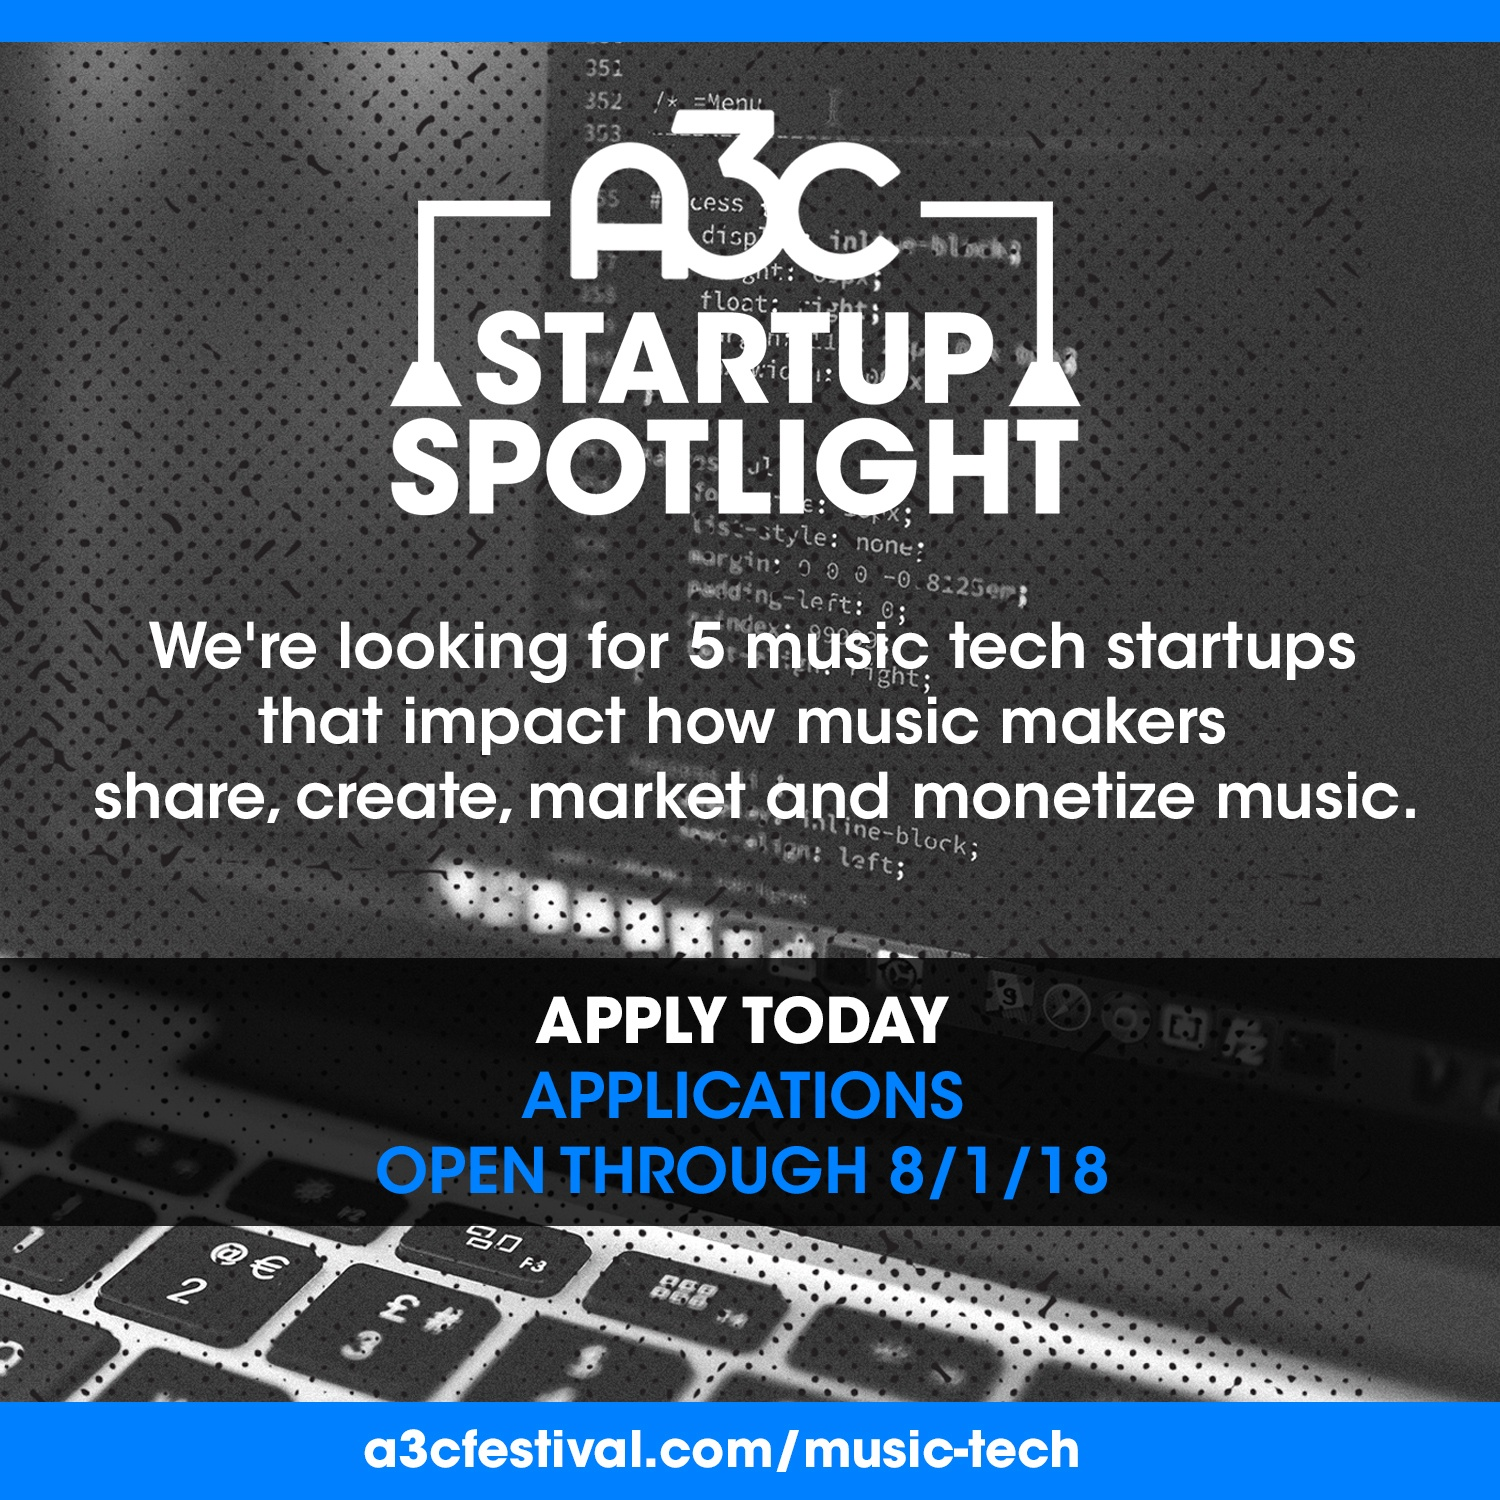 startup spolight application